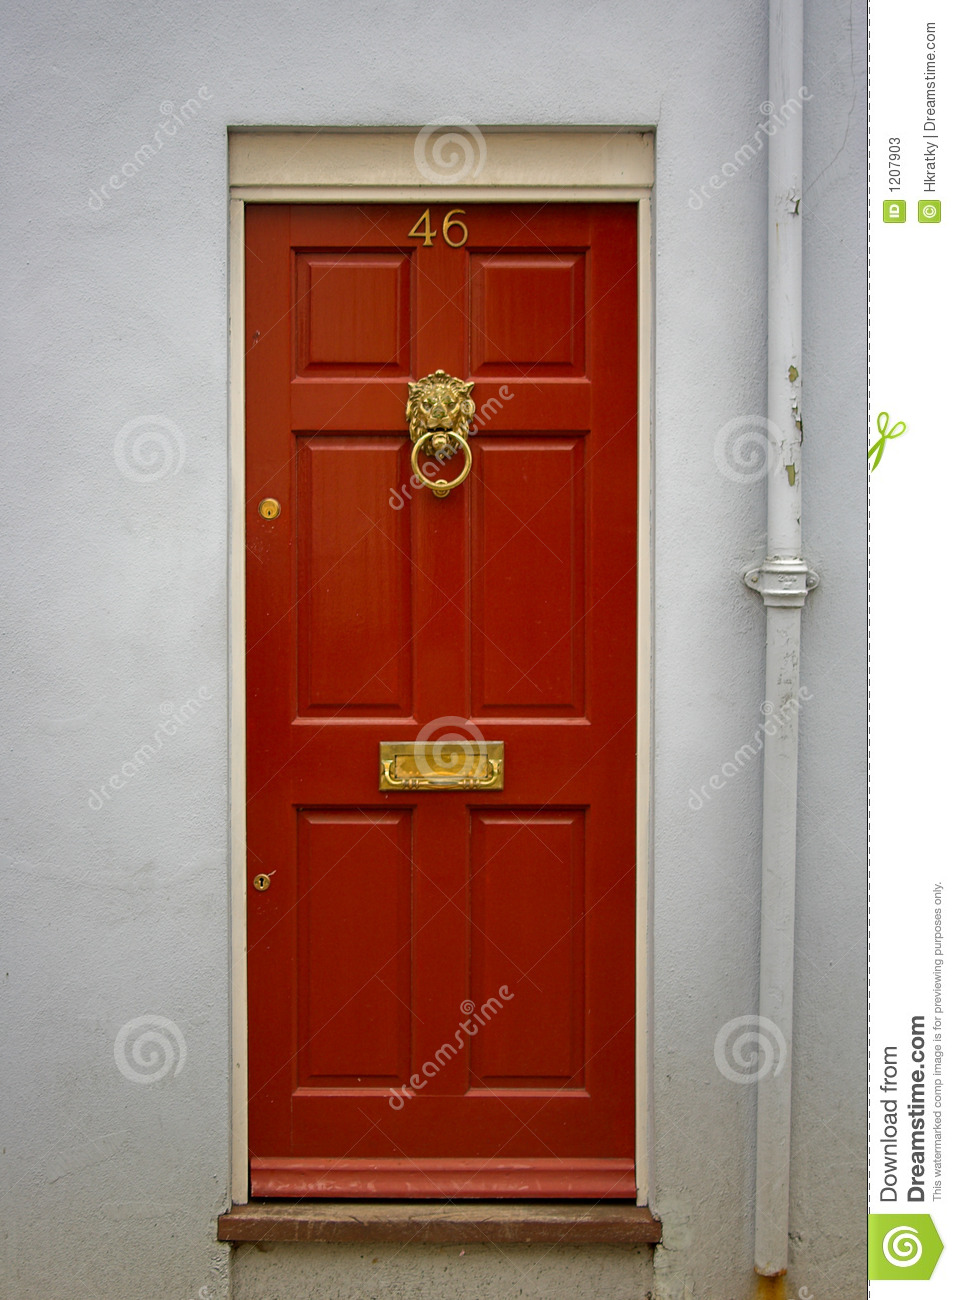 Front door clipart - Door Front